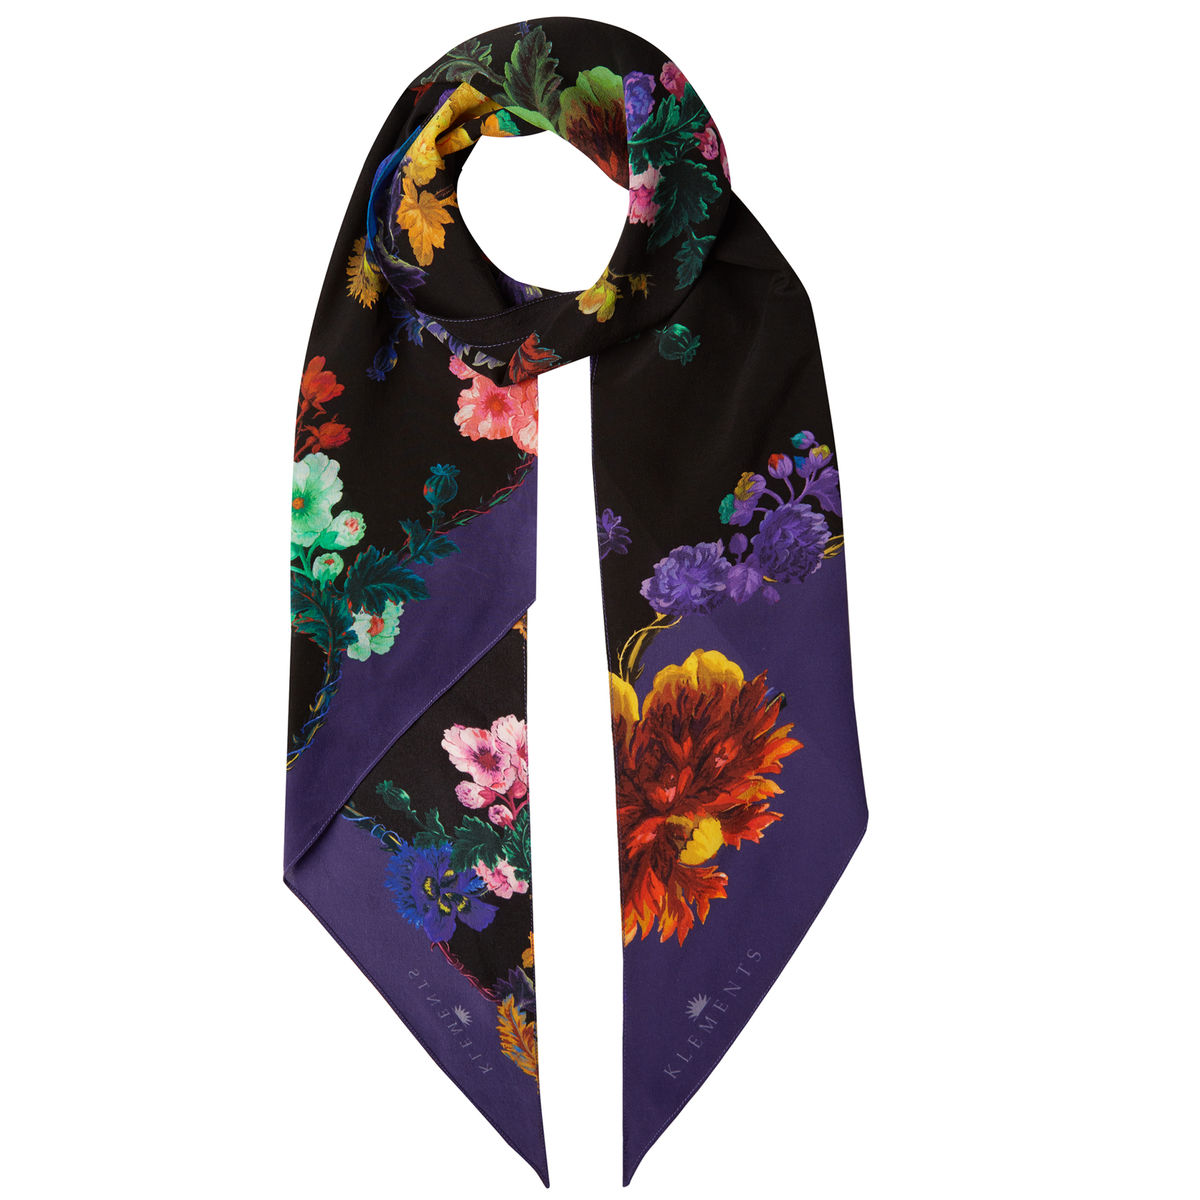 Razor scarf in Gothic Floral Black Base / Rainbows print - product image